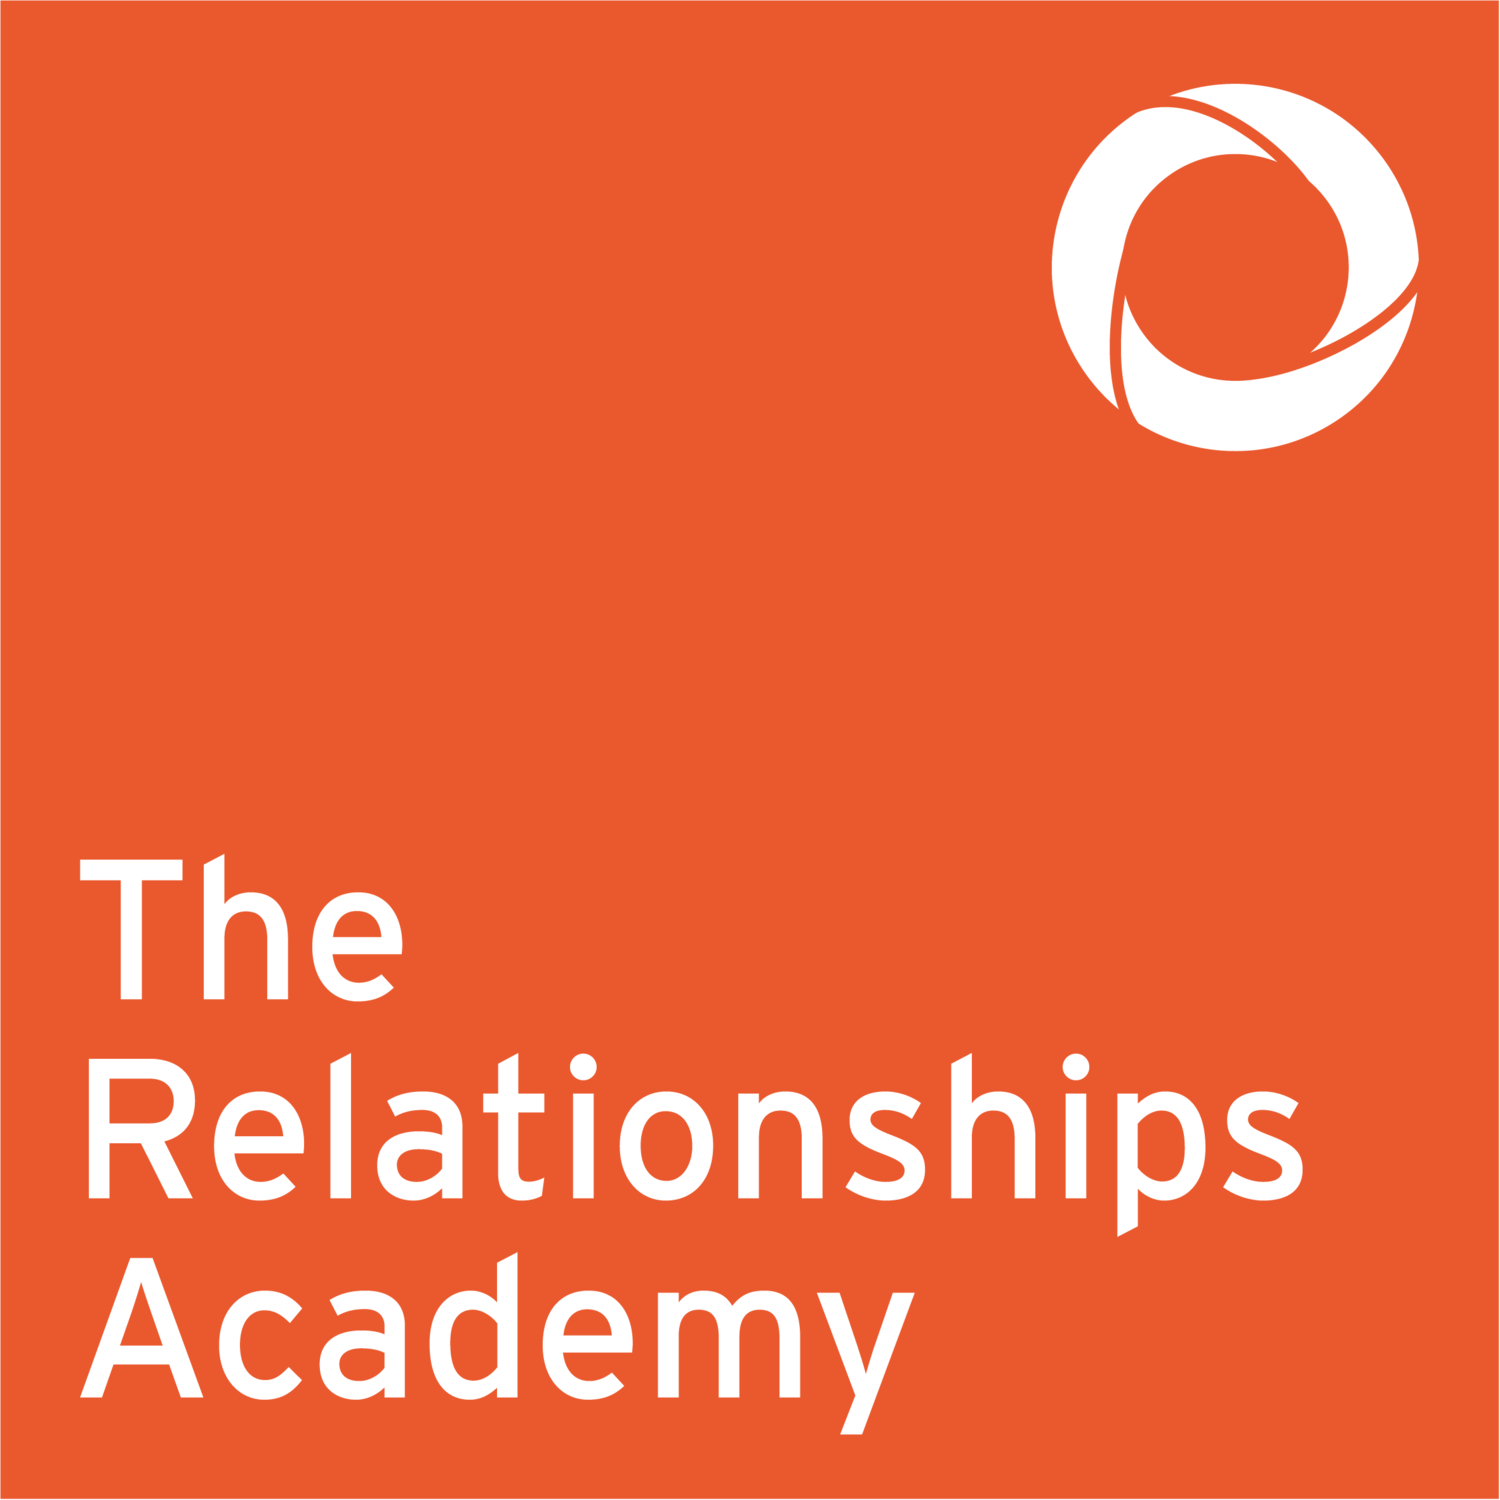 Relationships Academy Logo